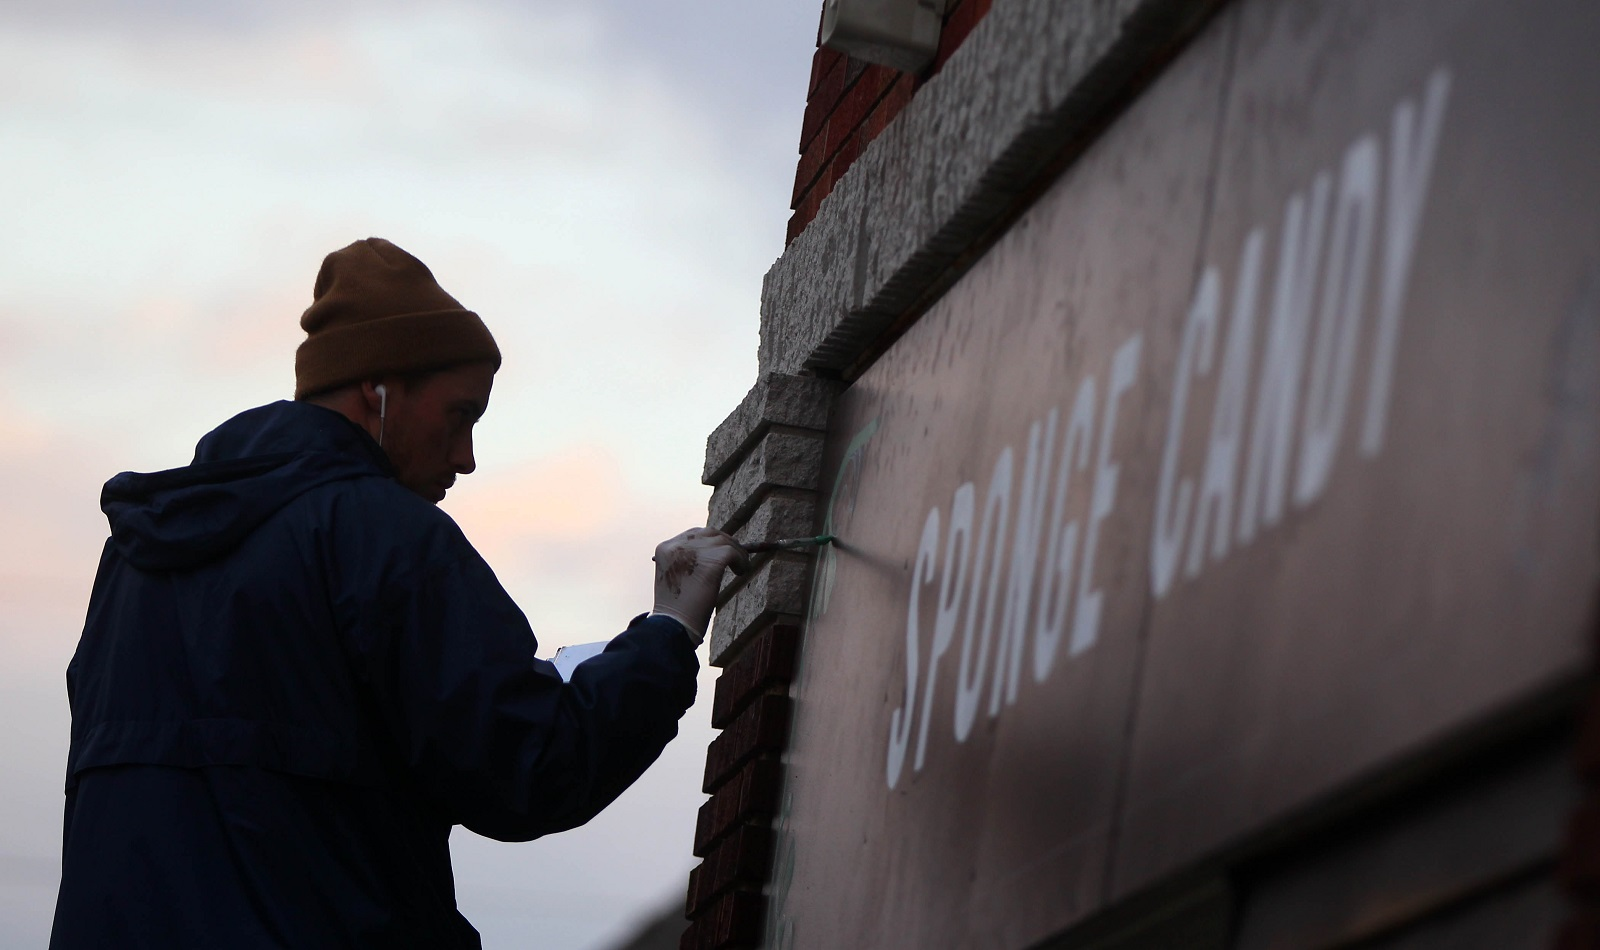 Jon Daly works on painting the store sign at Ko-Ed Candies. (Mark Mulville/Buffalo News)